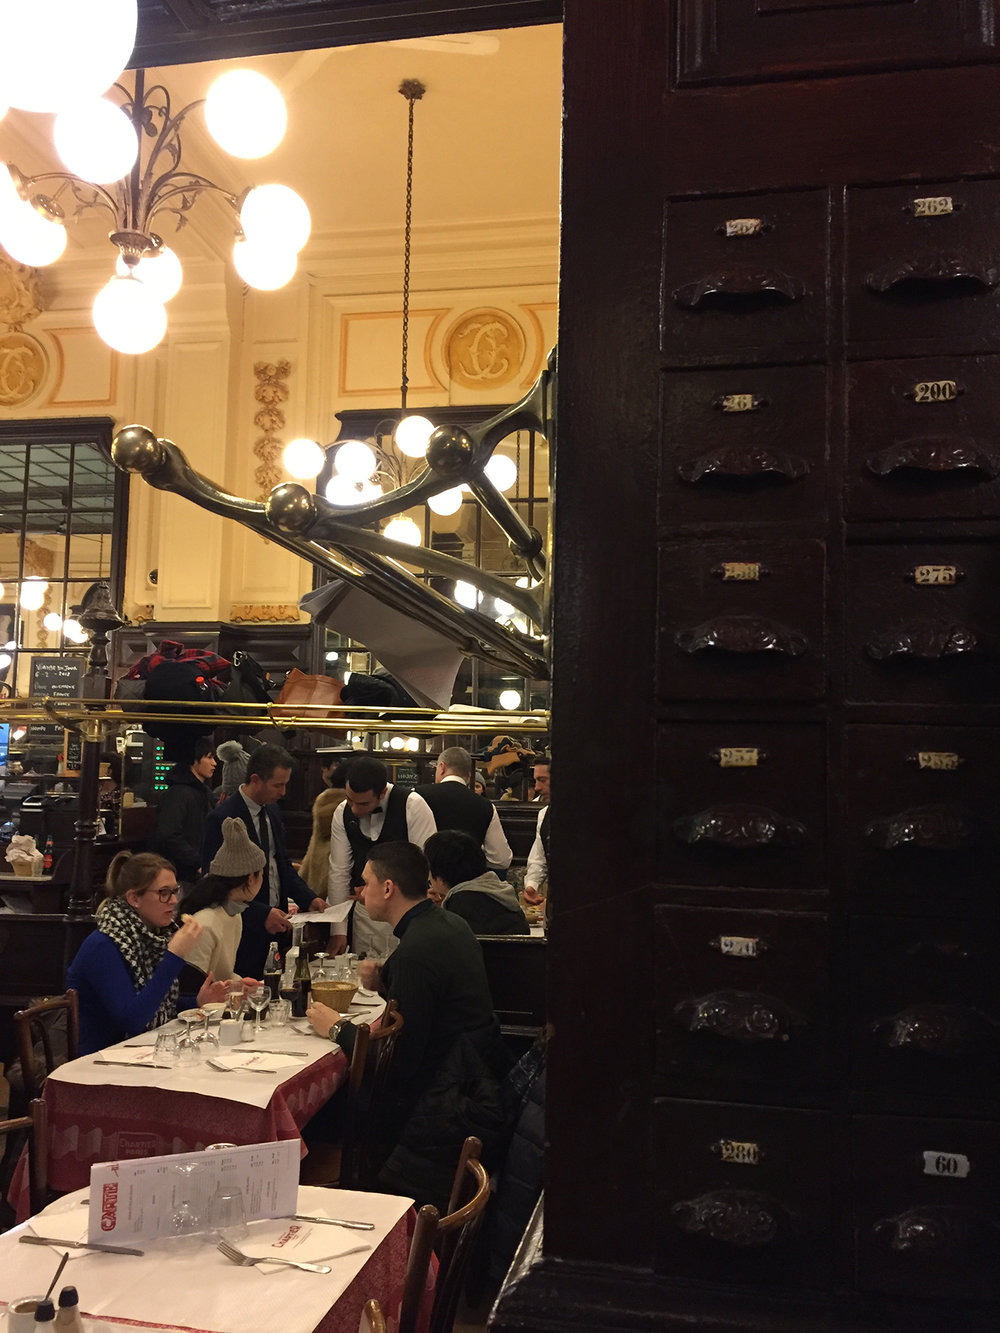 We were seated next to a bank of napkin drawers. I was very tempted to open one of them. Should have... Brass racks above the tables allow patrons to stow purses and coats.